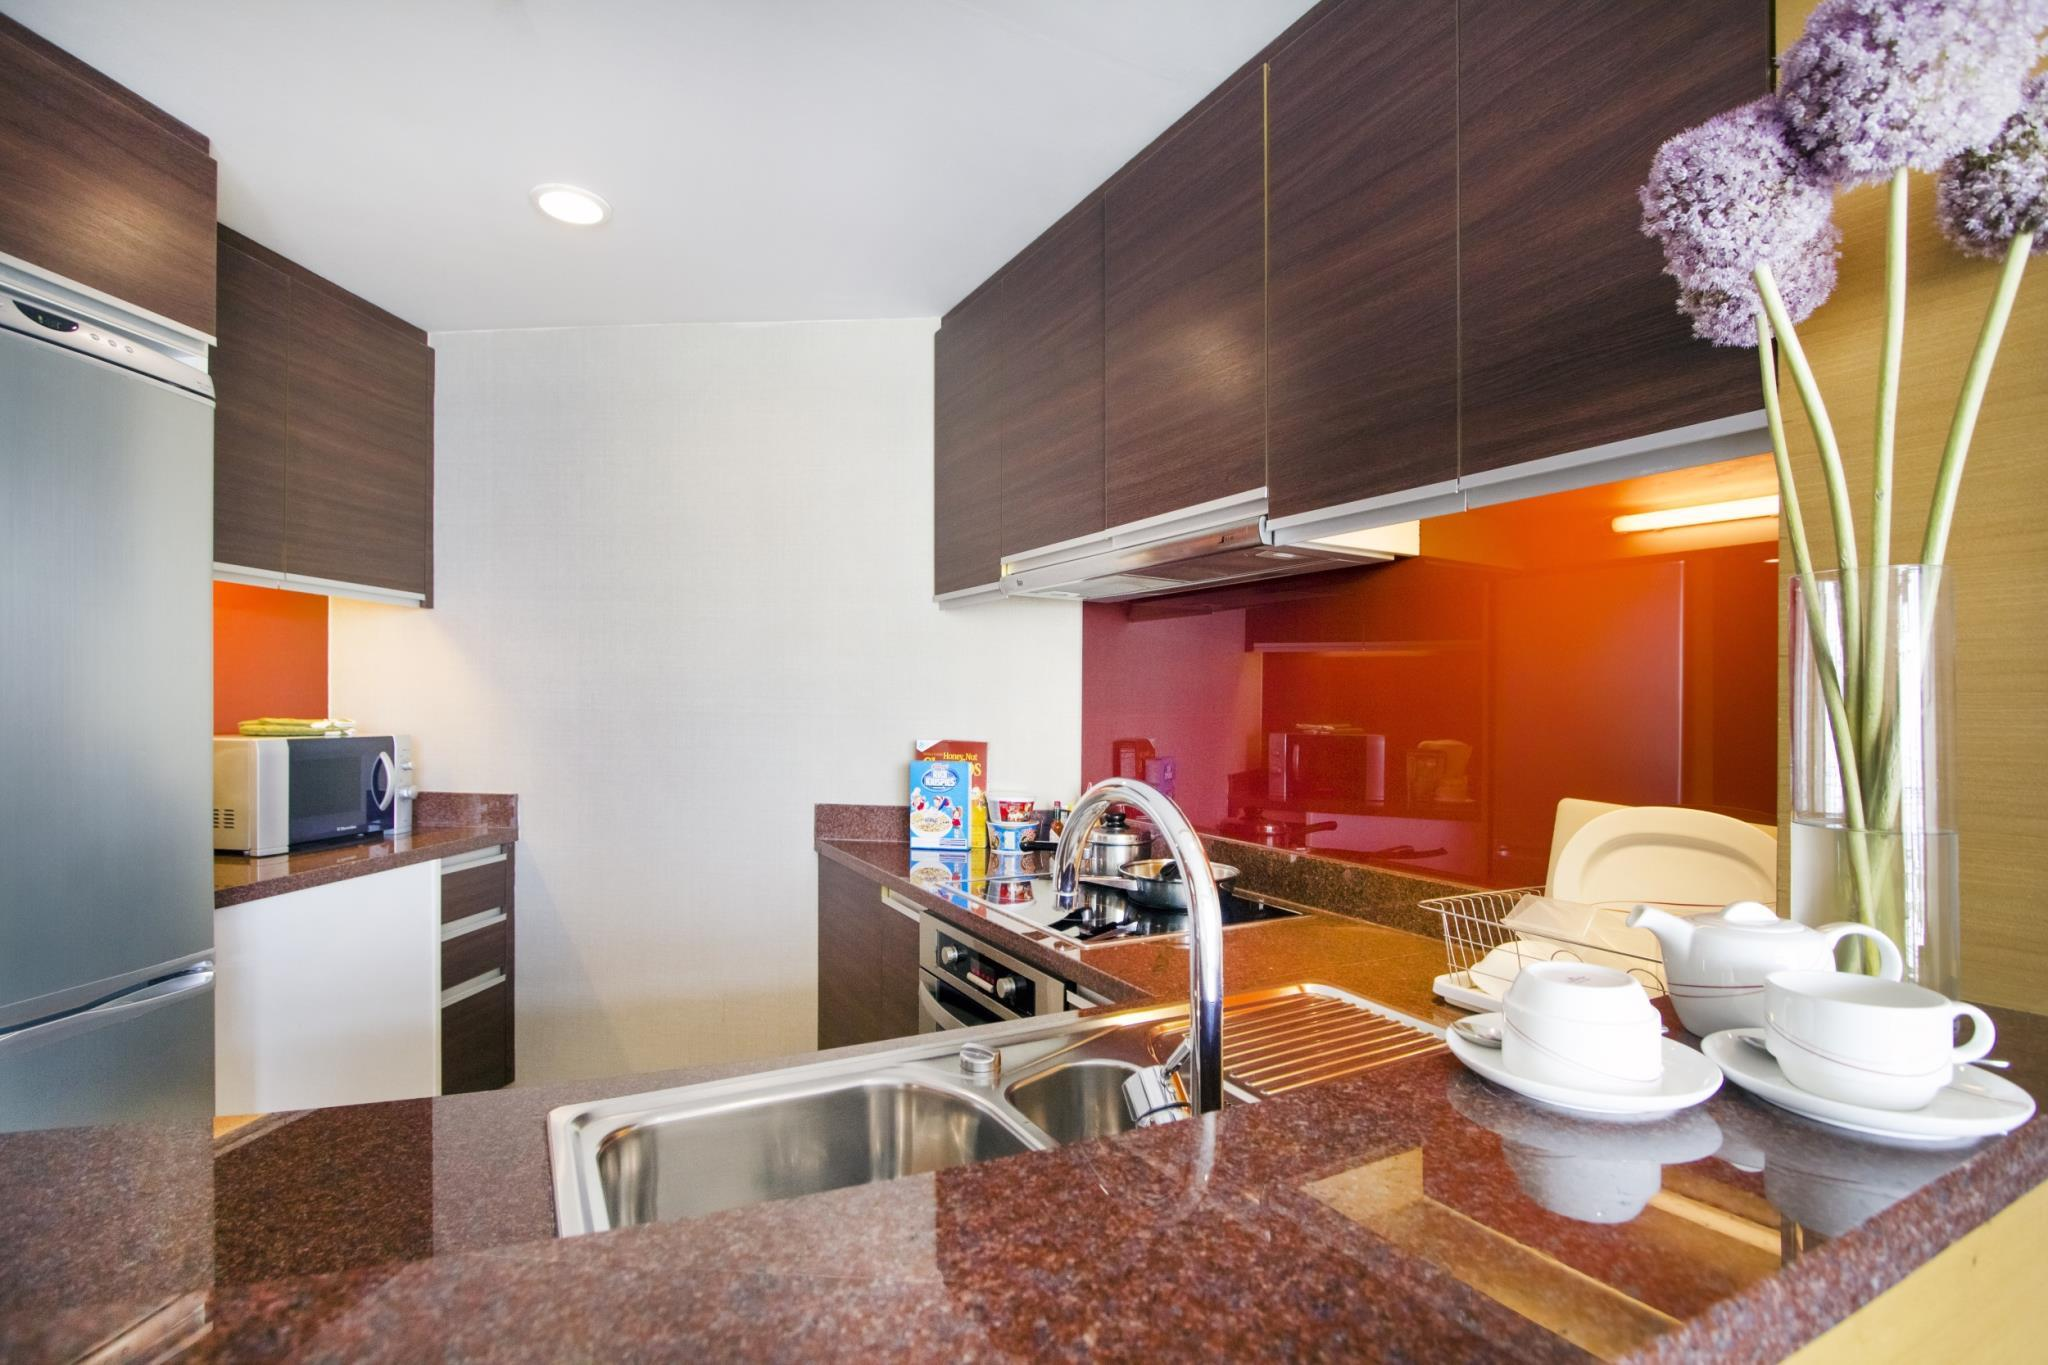 1 Dormitori Executive (1 Bedroom Executive)